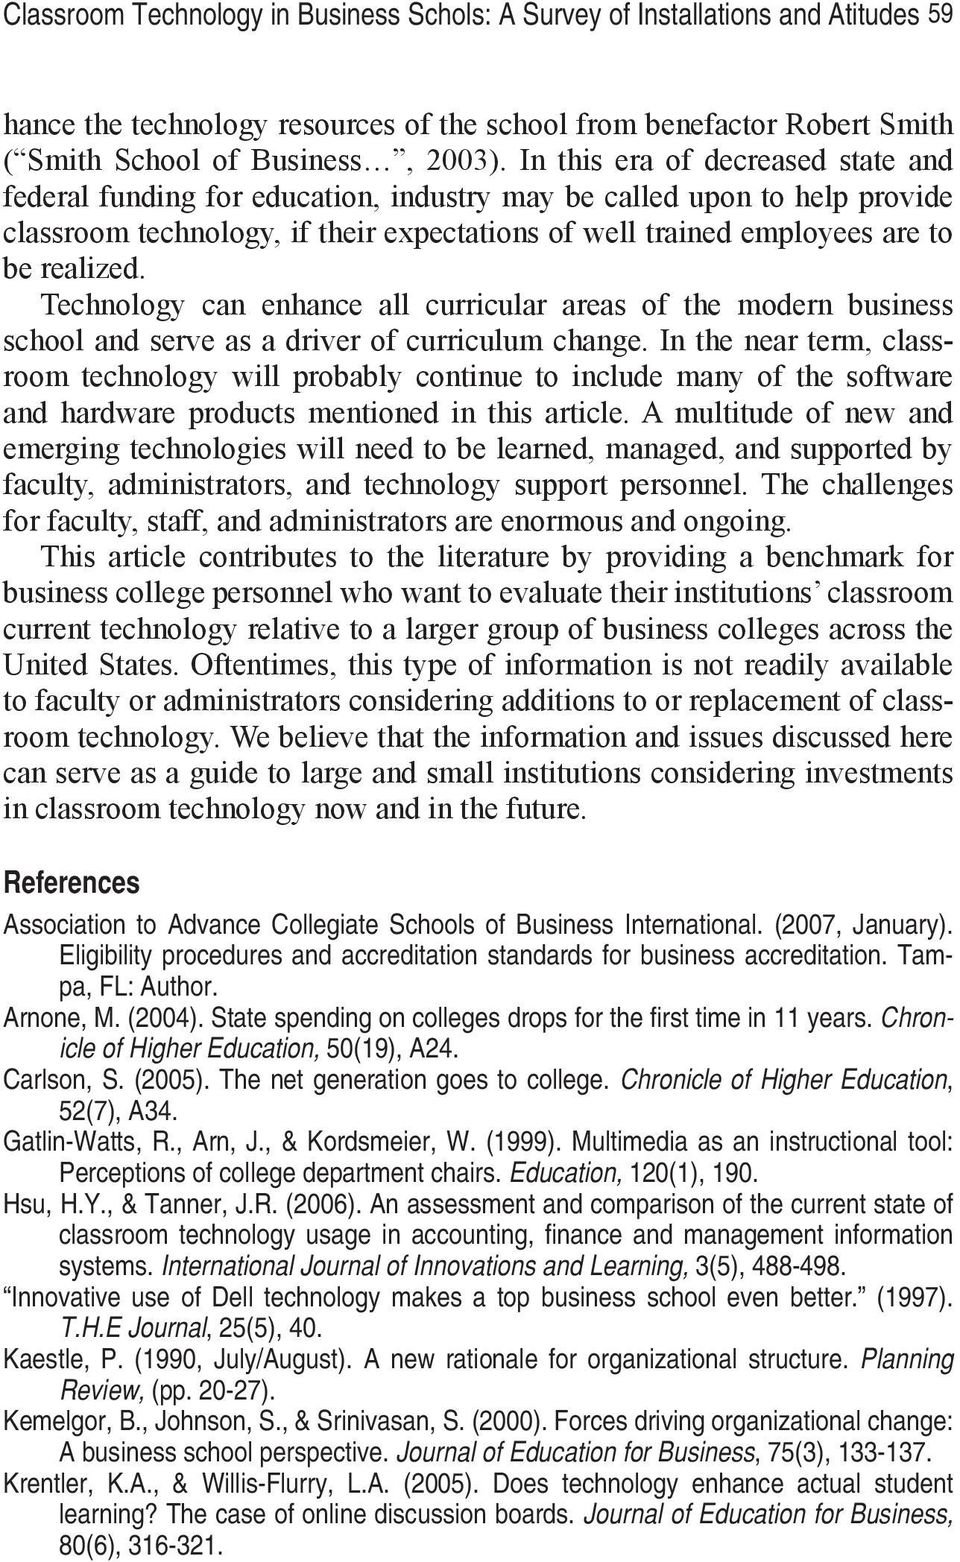 Technology can enhance all curricular areas of the modern business school and serve as a driver of curriculum change.